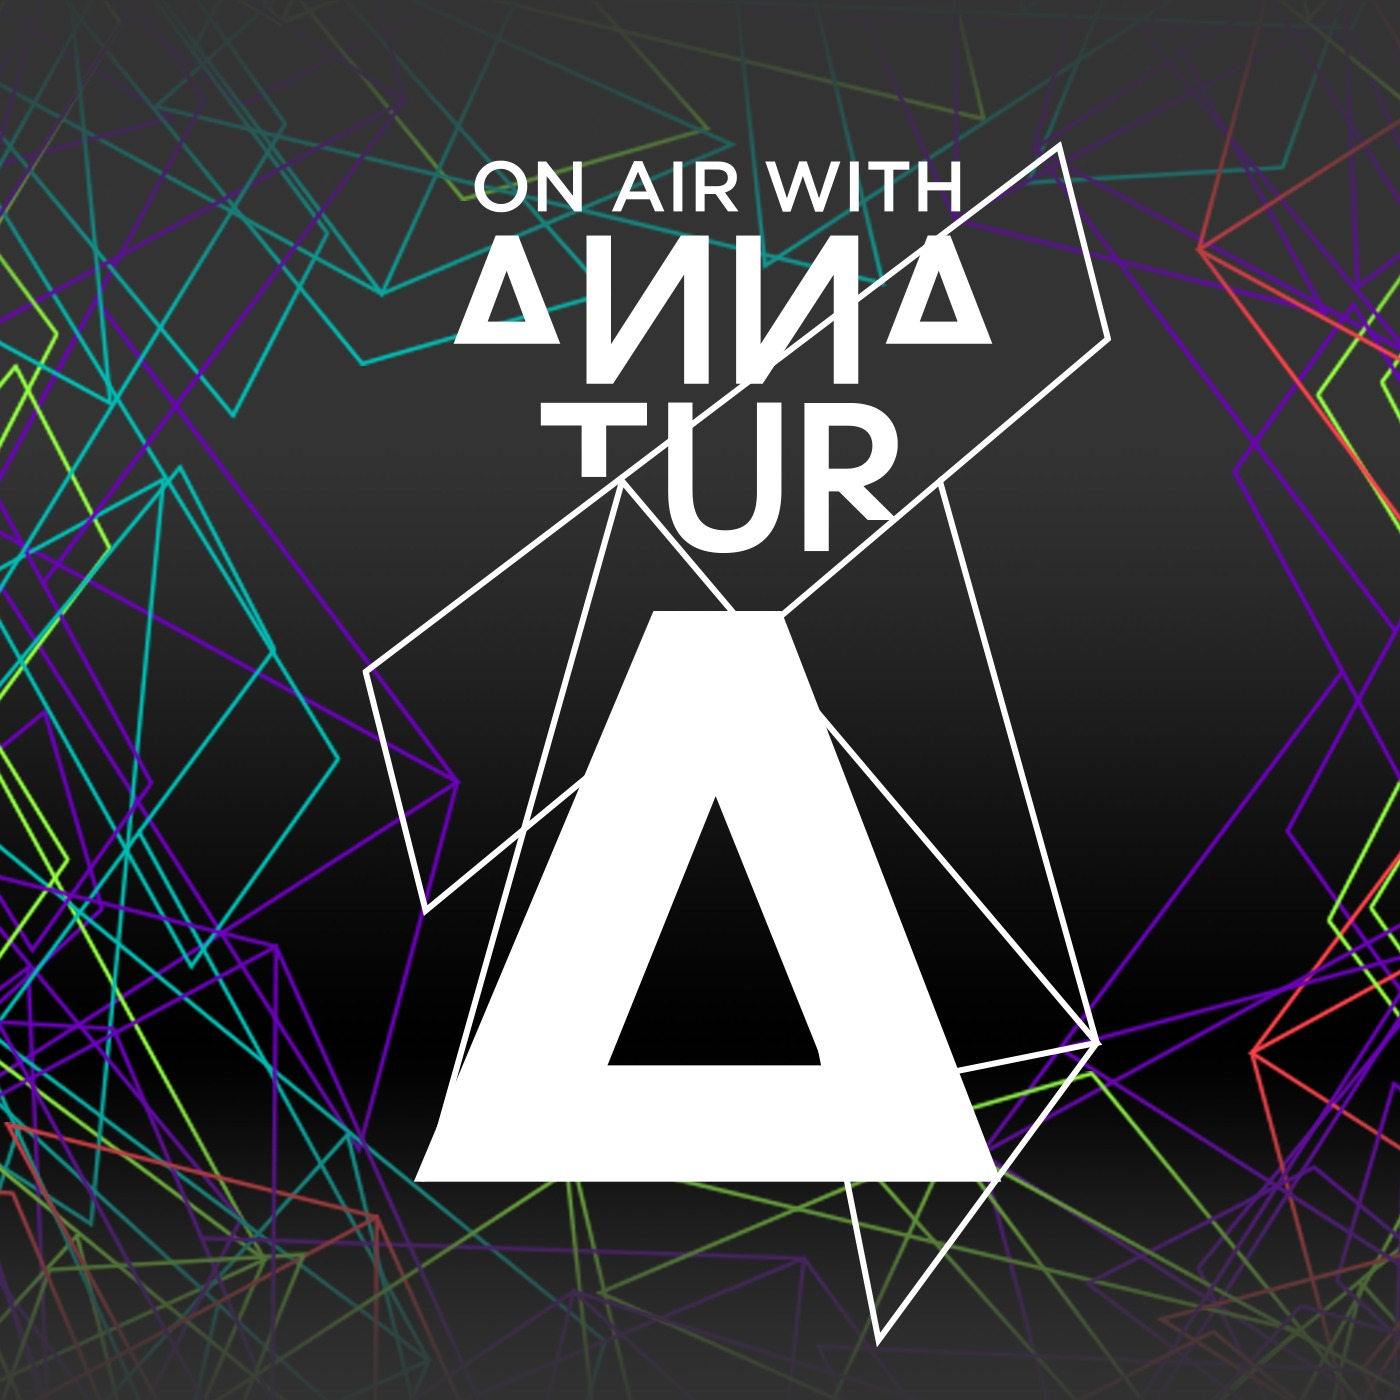 On Air with Anna Tur